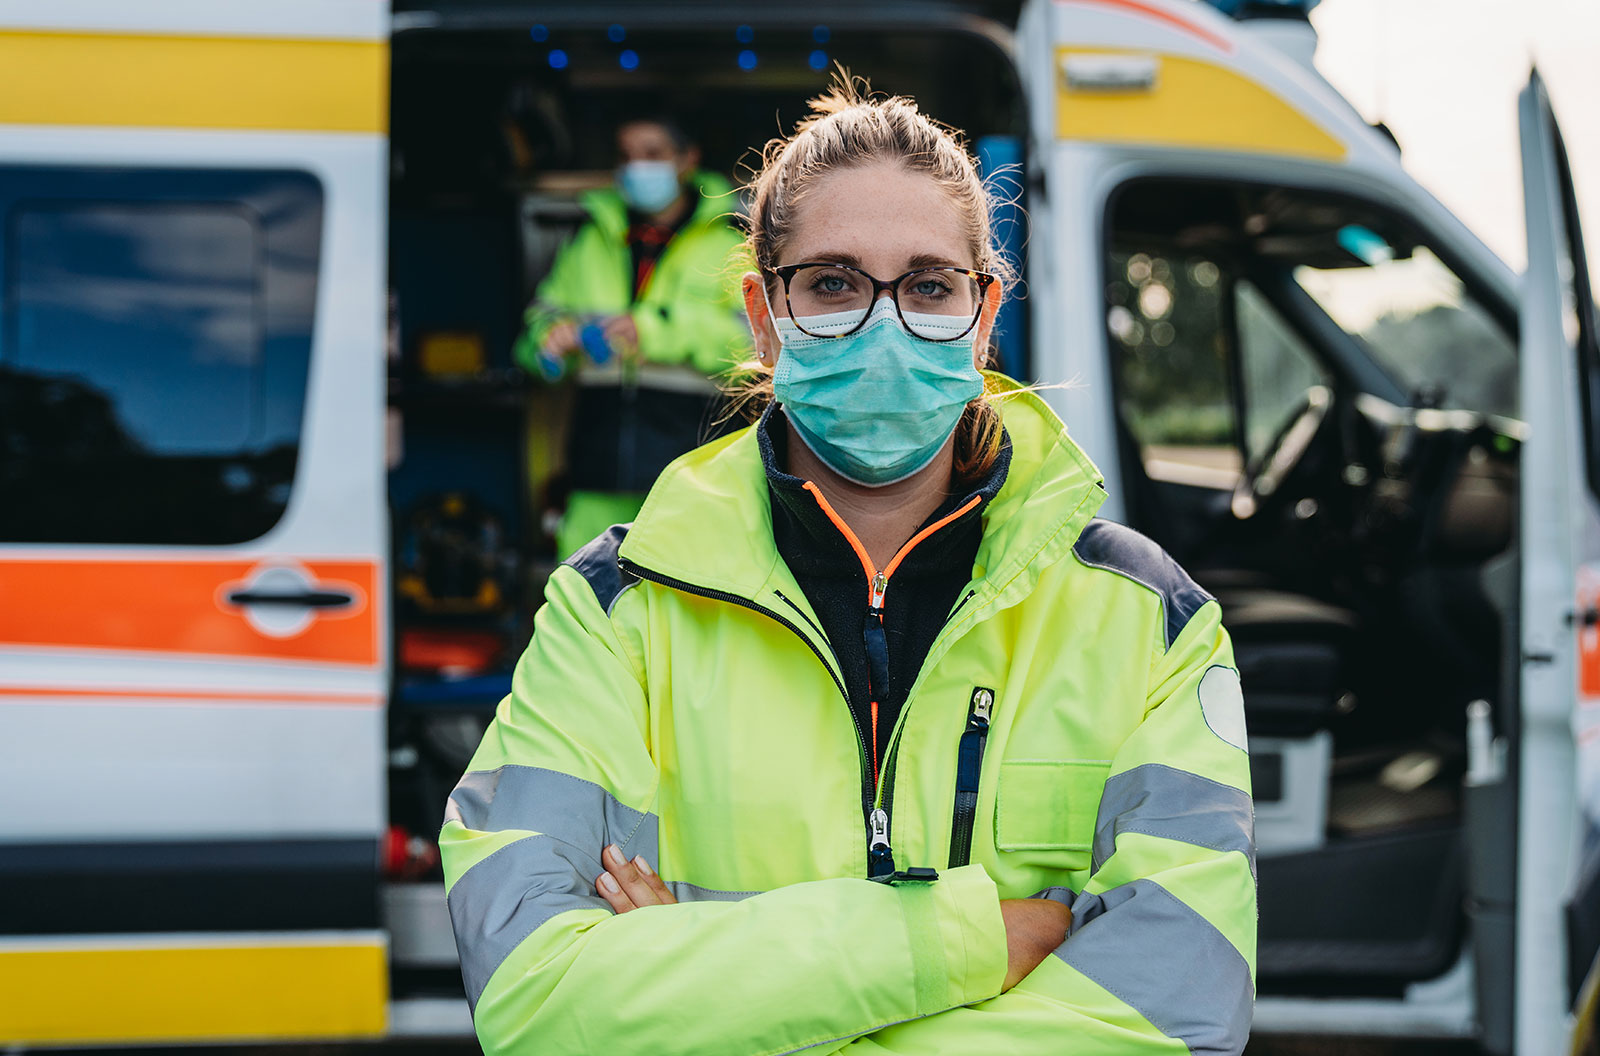 A female paramedic wearing a mask stands outside of an ambulance with its side door open